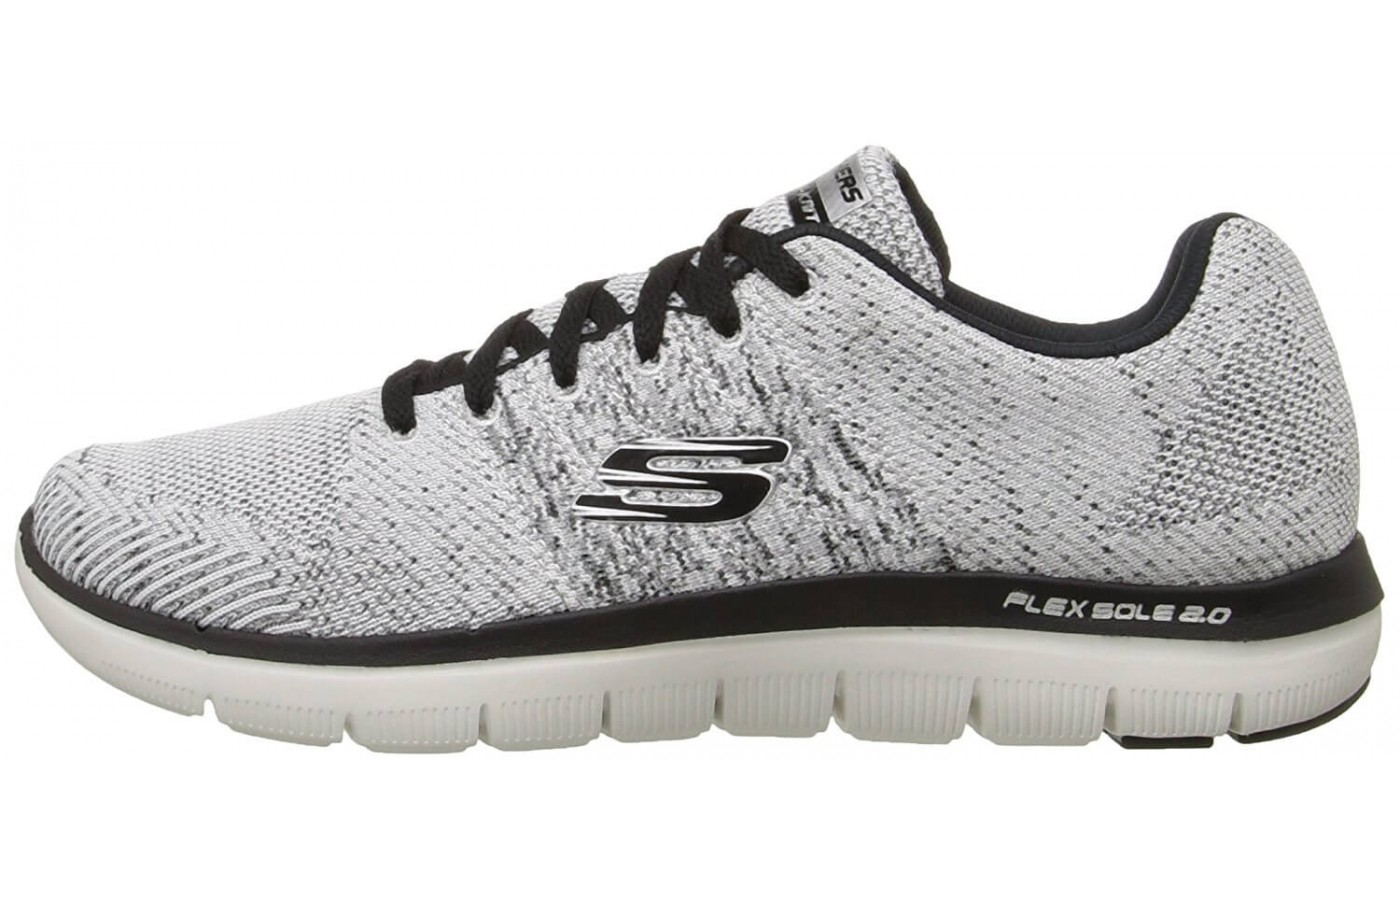 43cdc019595c Skechers Flex Advantage 2.0 - To Buy or Not in Apr 2019